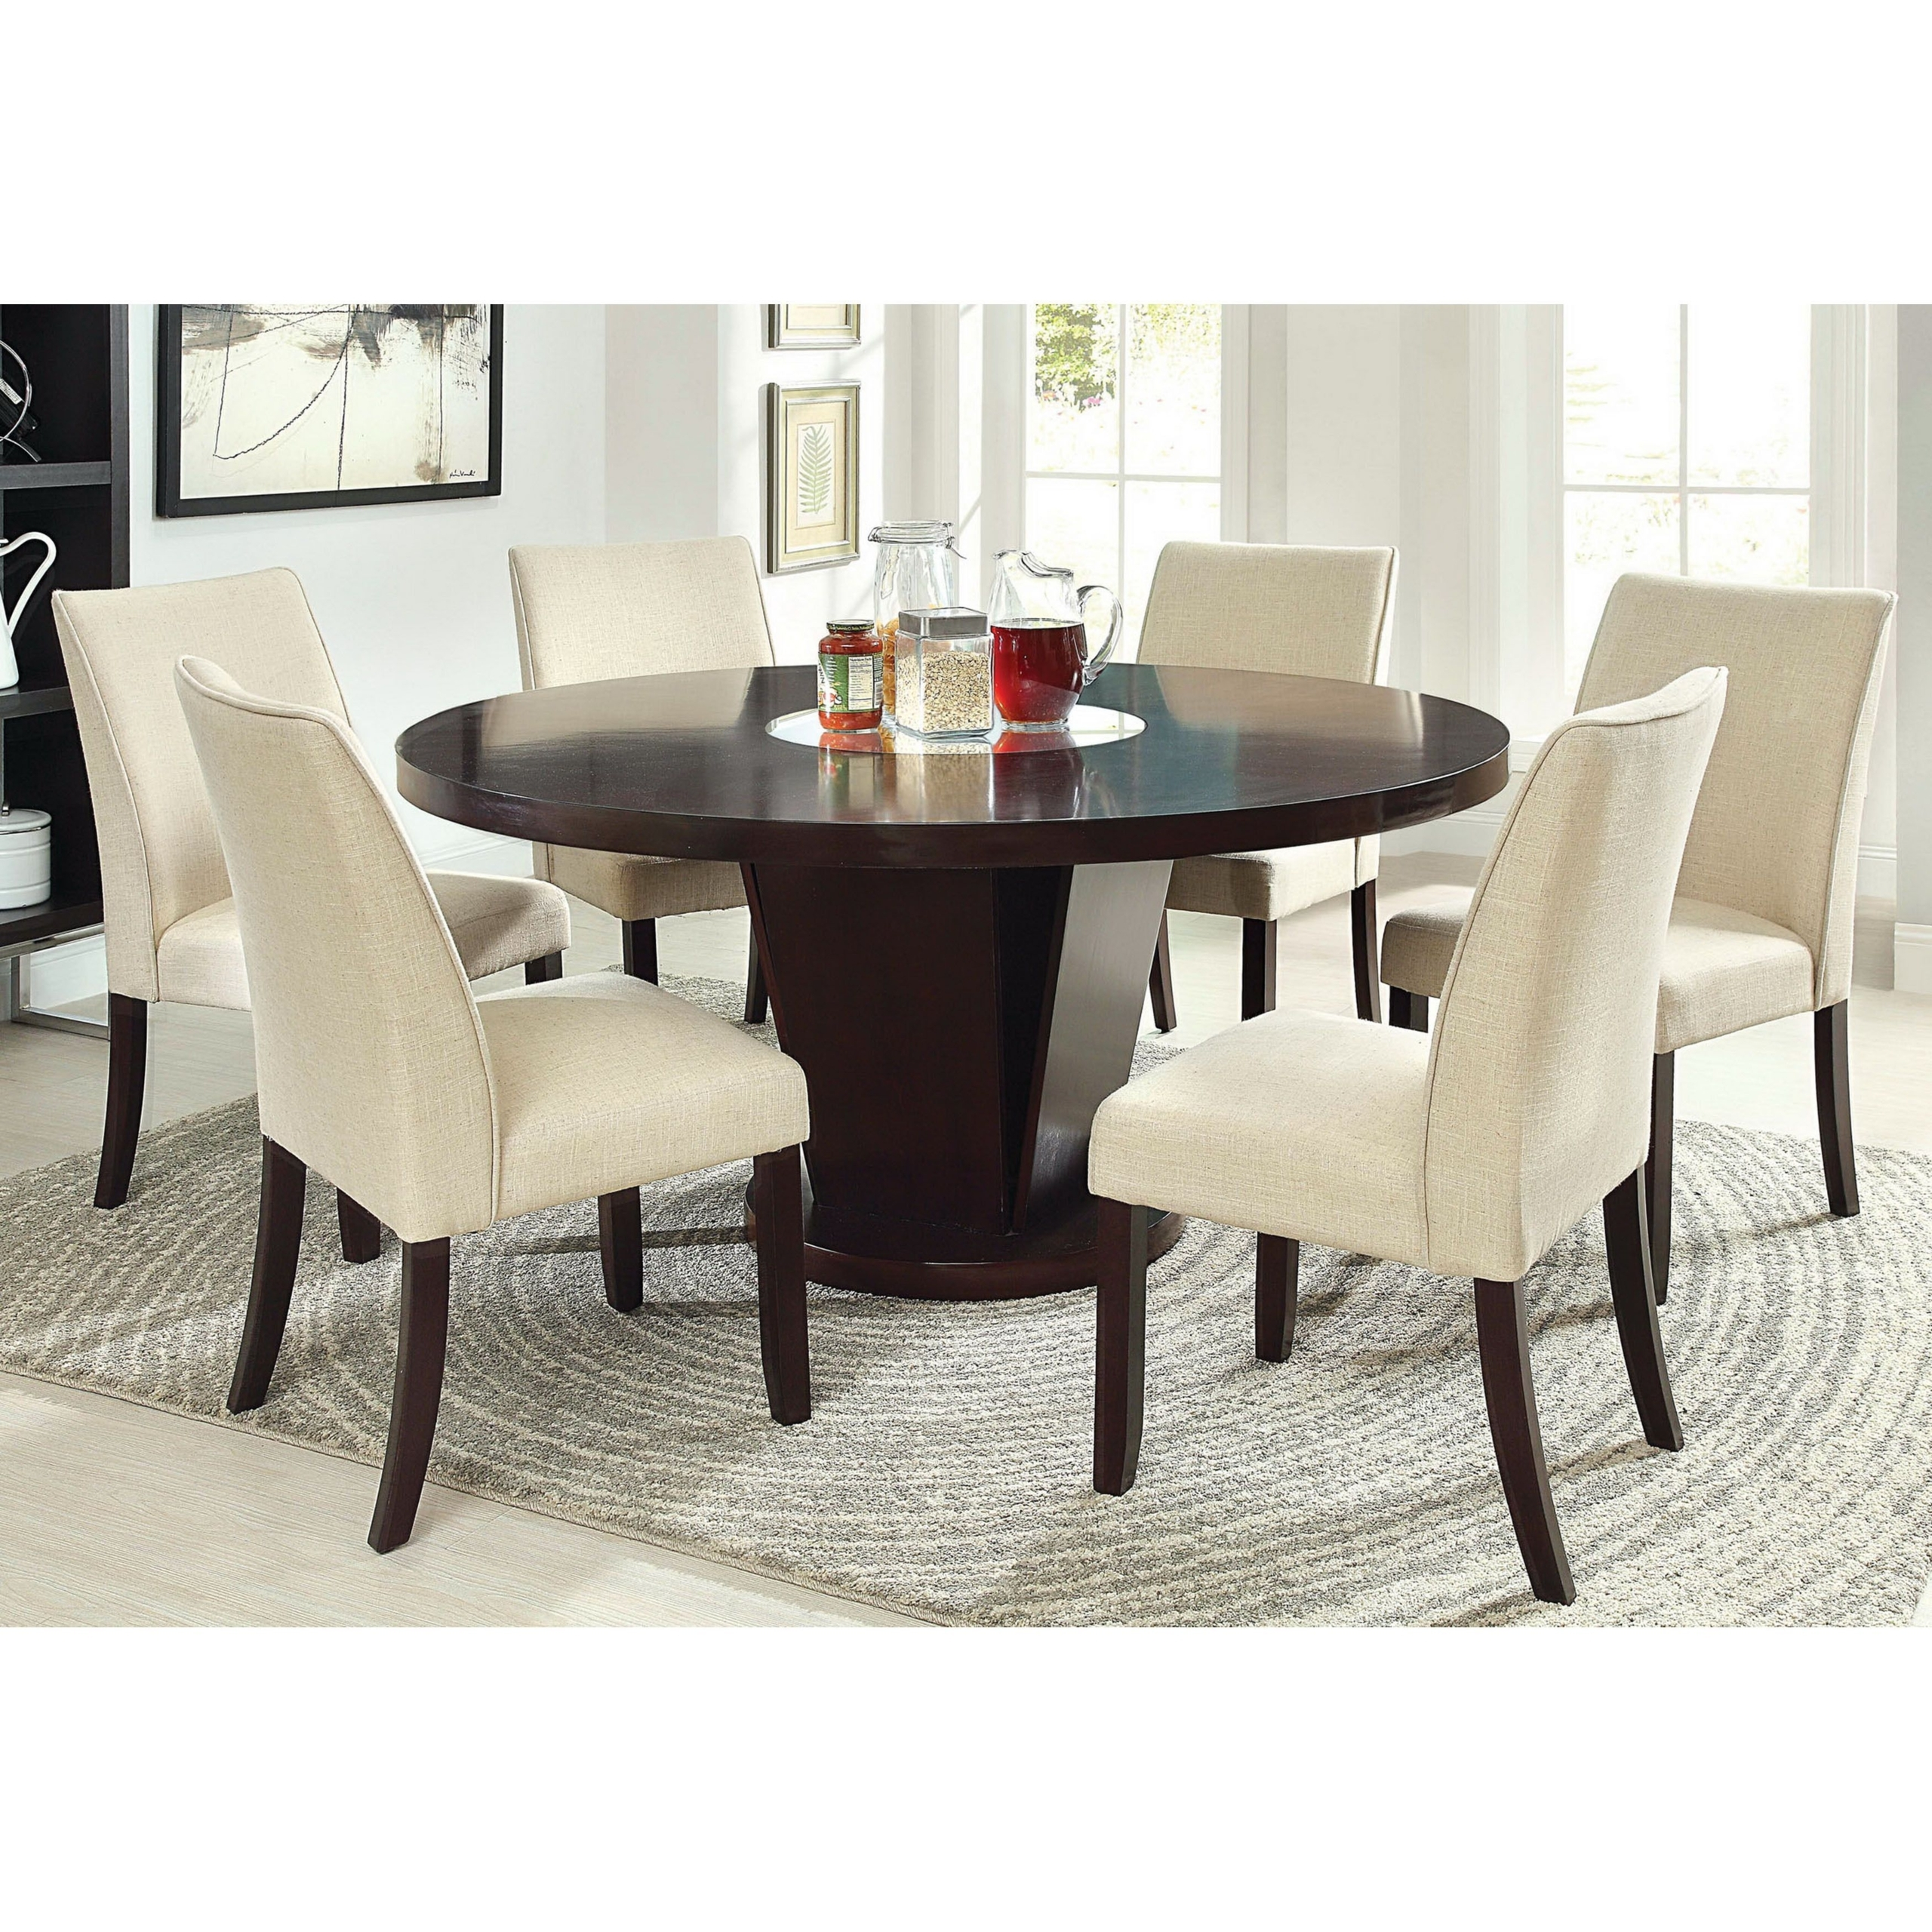 Round Dining Table For 6 You Ll Love In 2020 Visualhunt